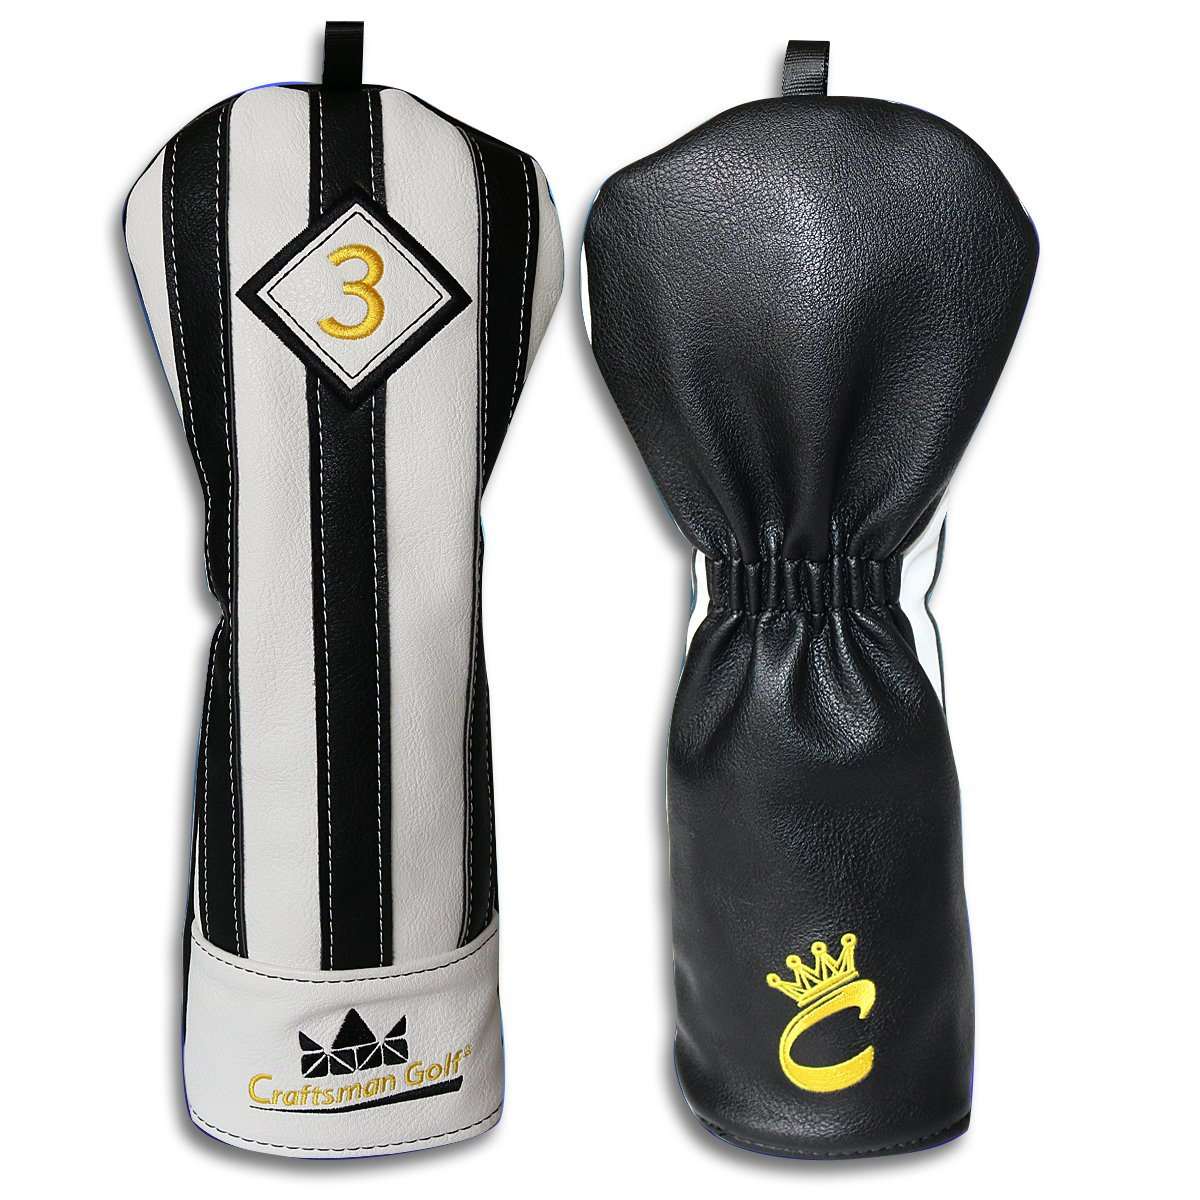 Craftsman Golf Black with White Stripes Series Golf Club Driver Wood UT Hybrid Head Cover Headcover (#3 Wood Cover)